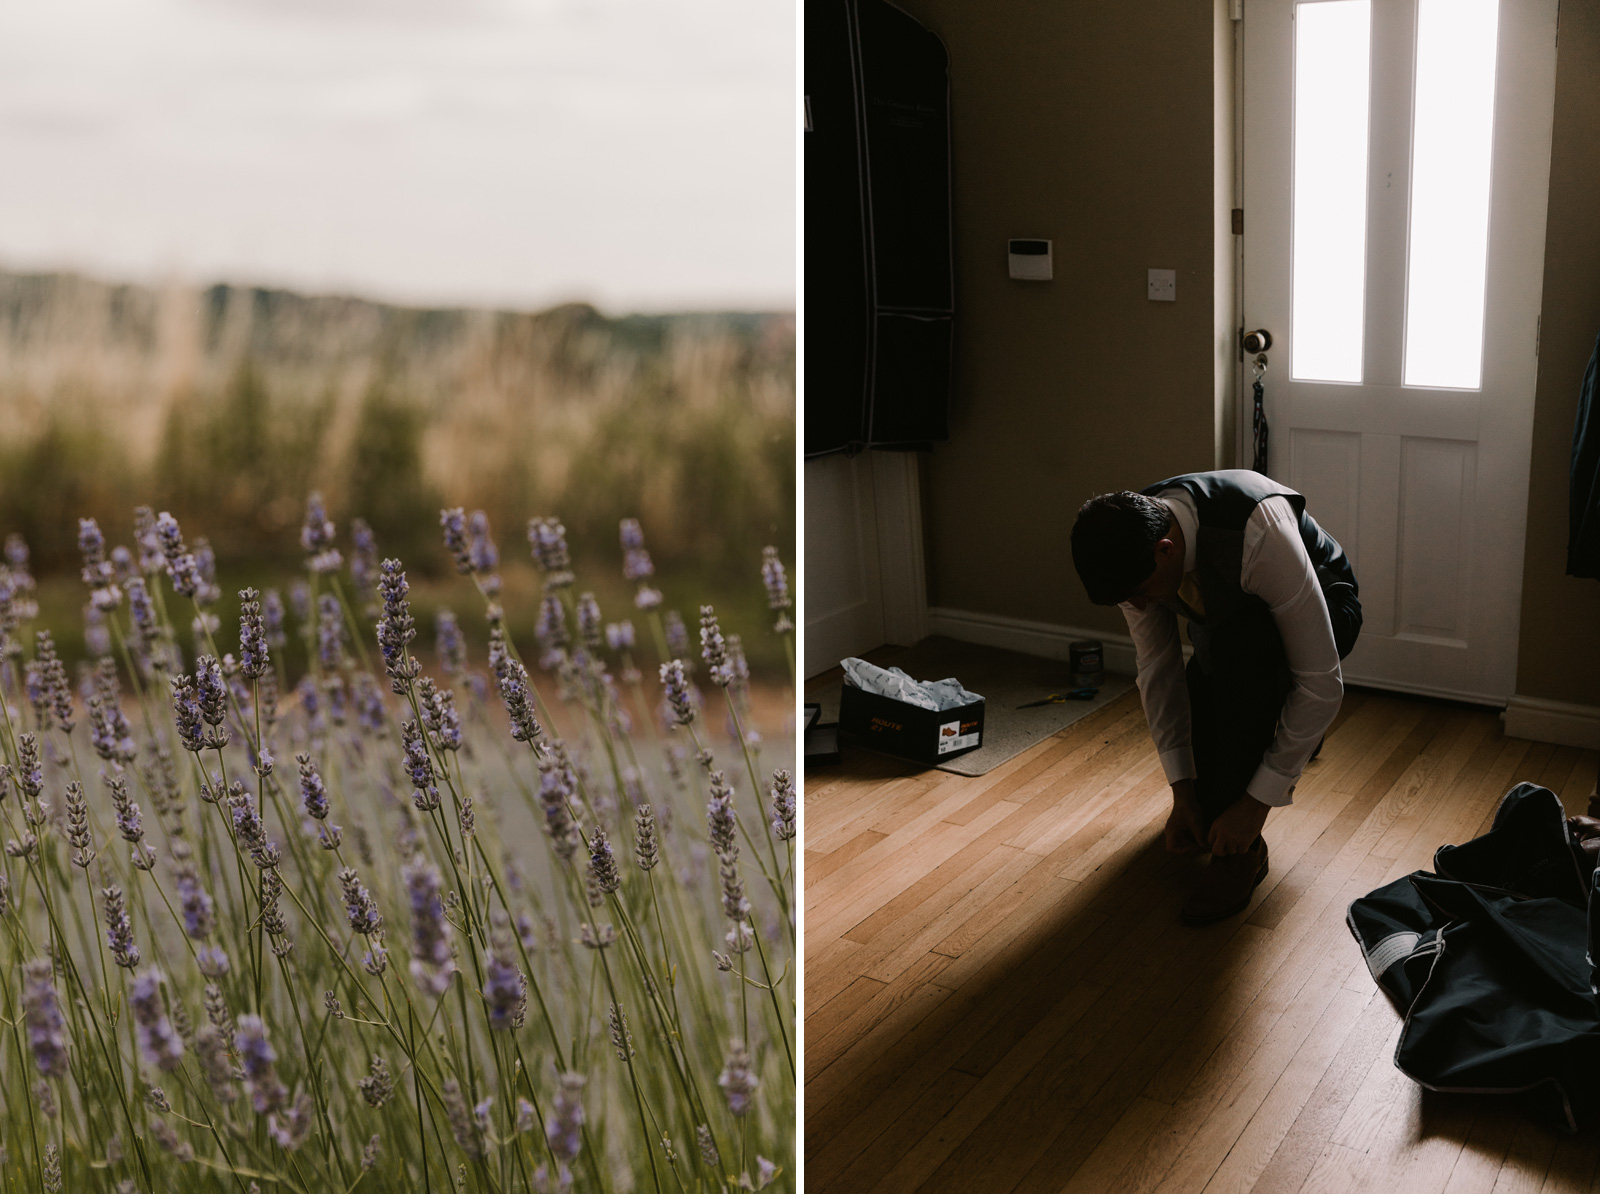 Split shot of a lavender field and groom getting ready